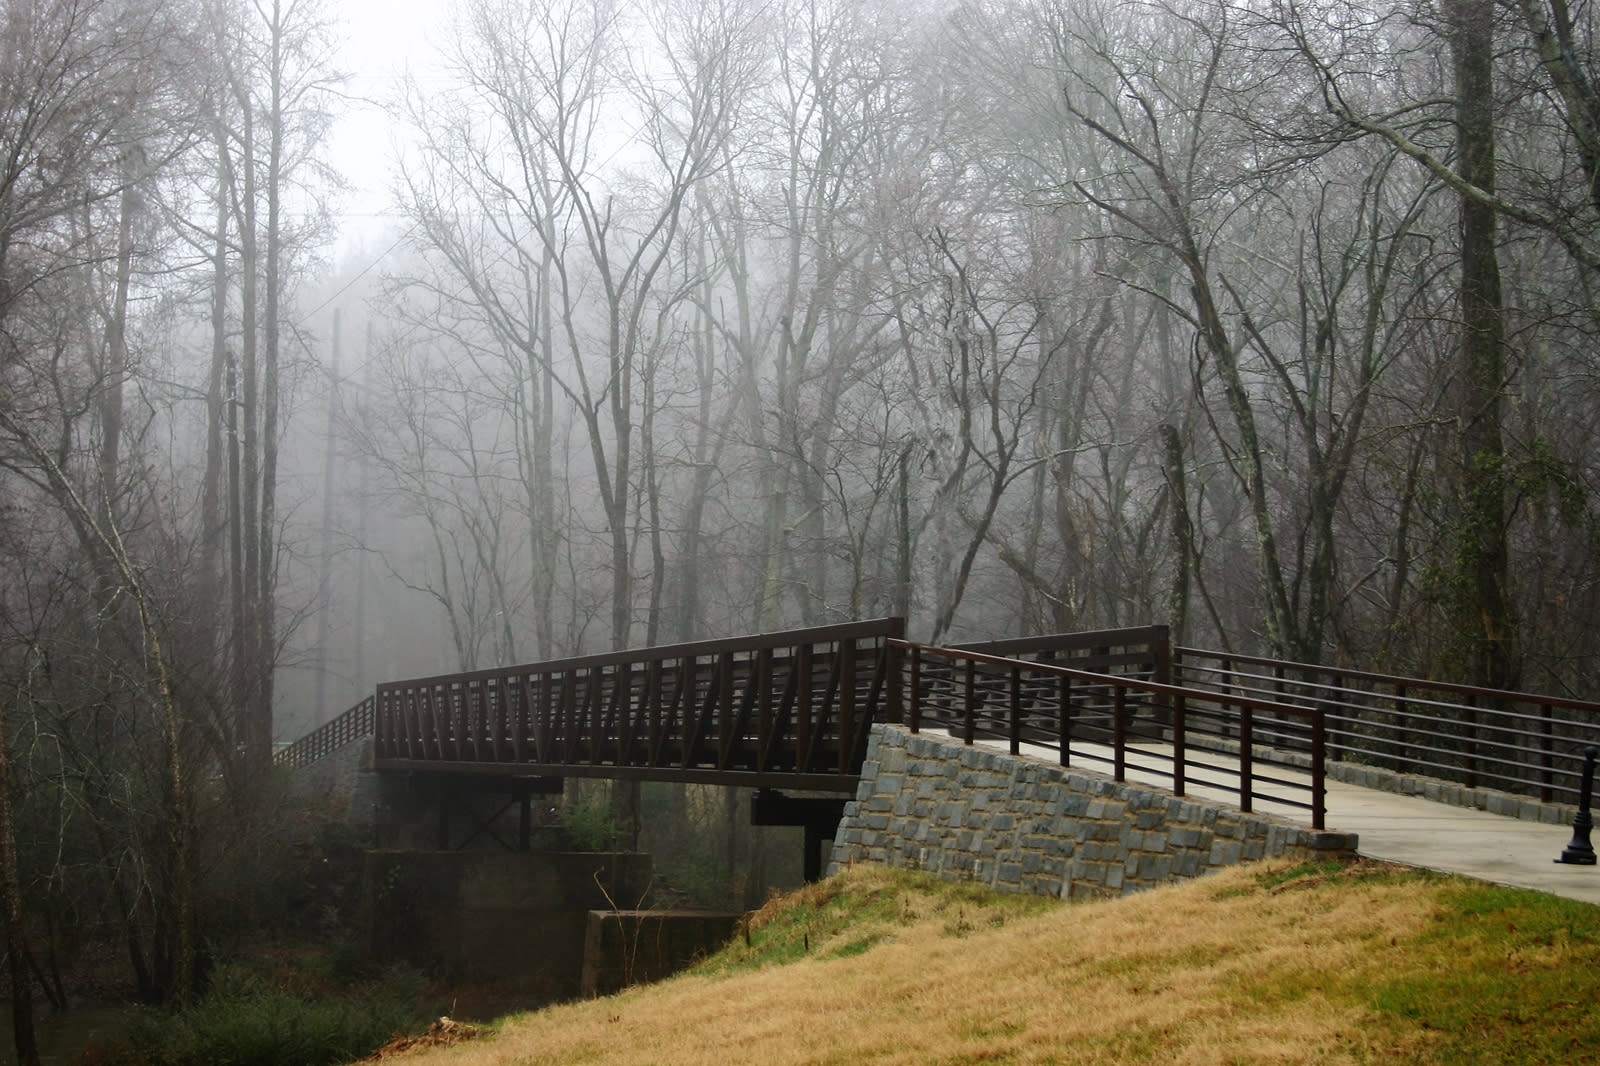 North Oconee River Greenway in Athens, Georgia